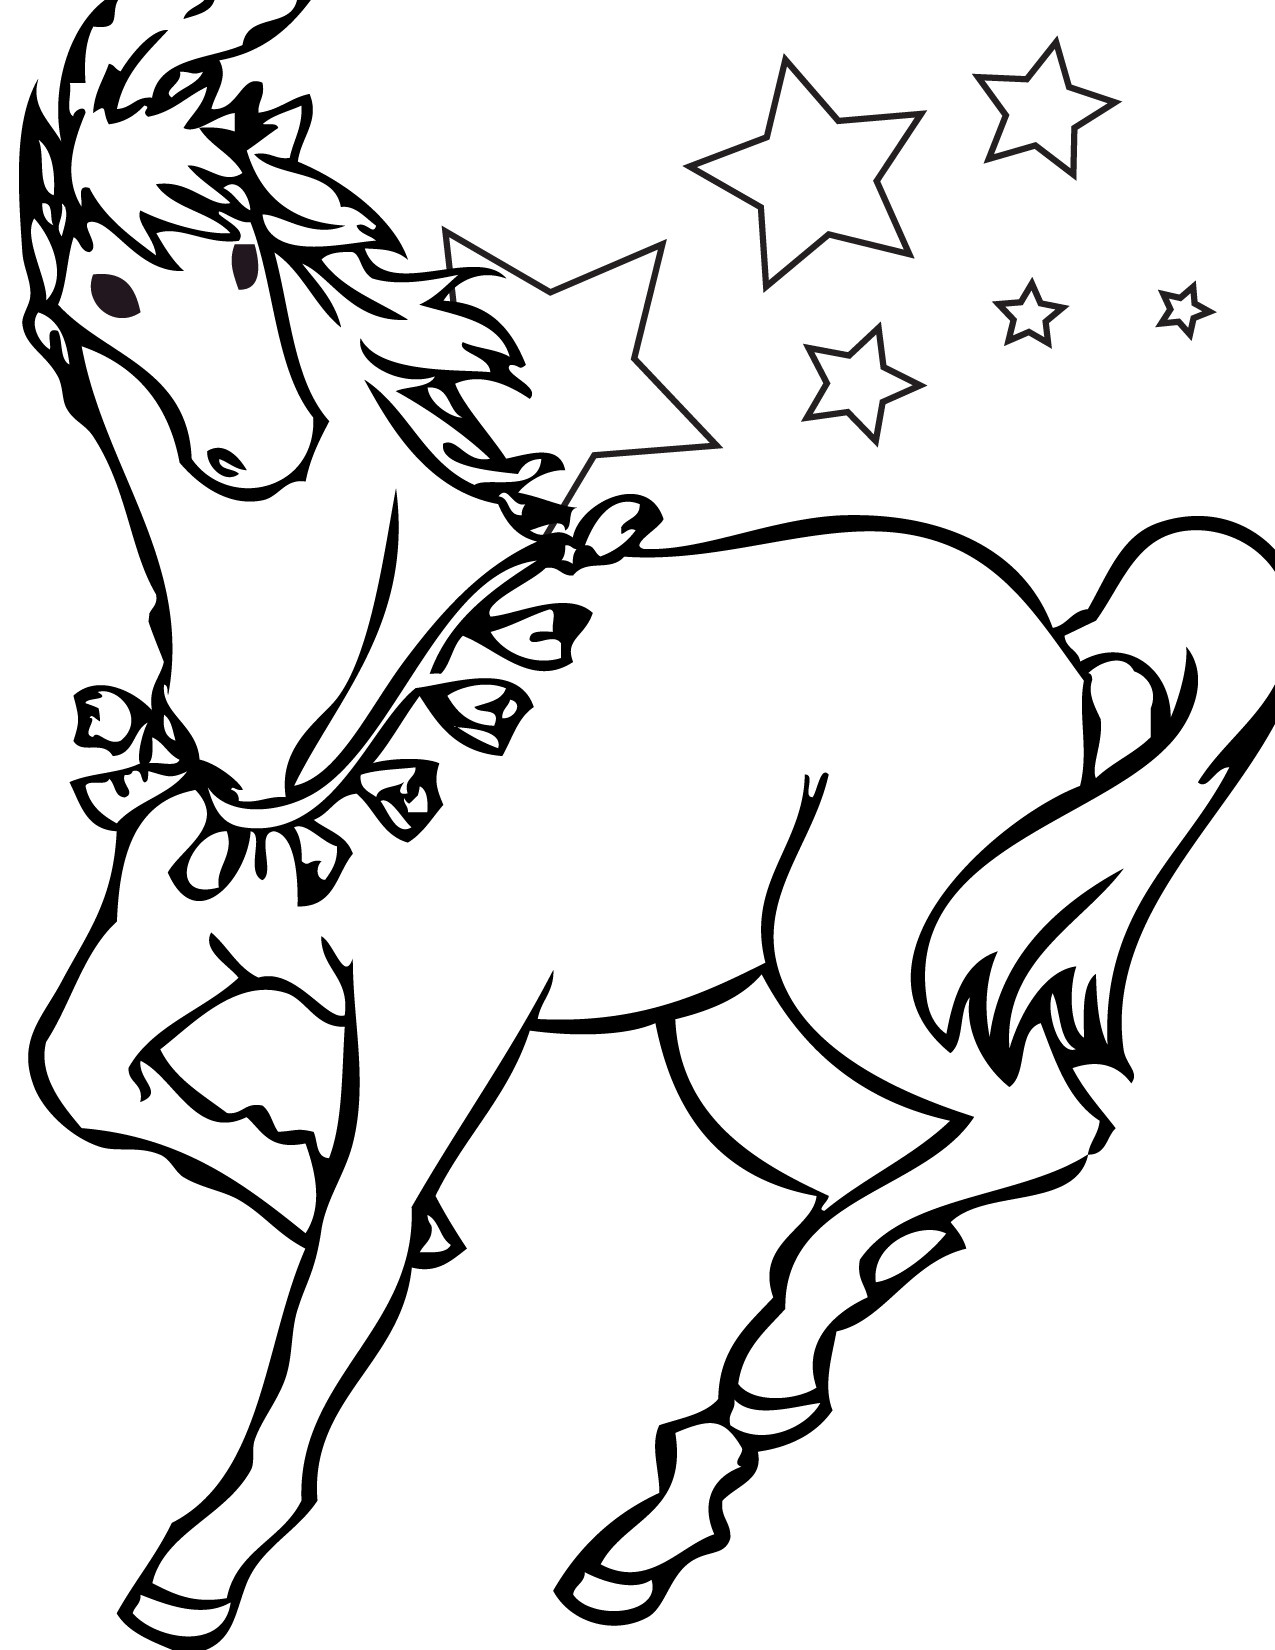 Coloring Pages Horse Printable Of Horse Detailed Coloring Pages Gallery